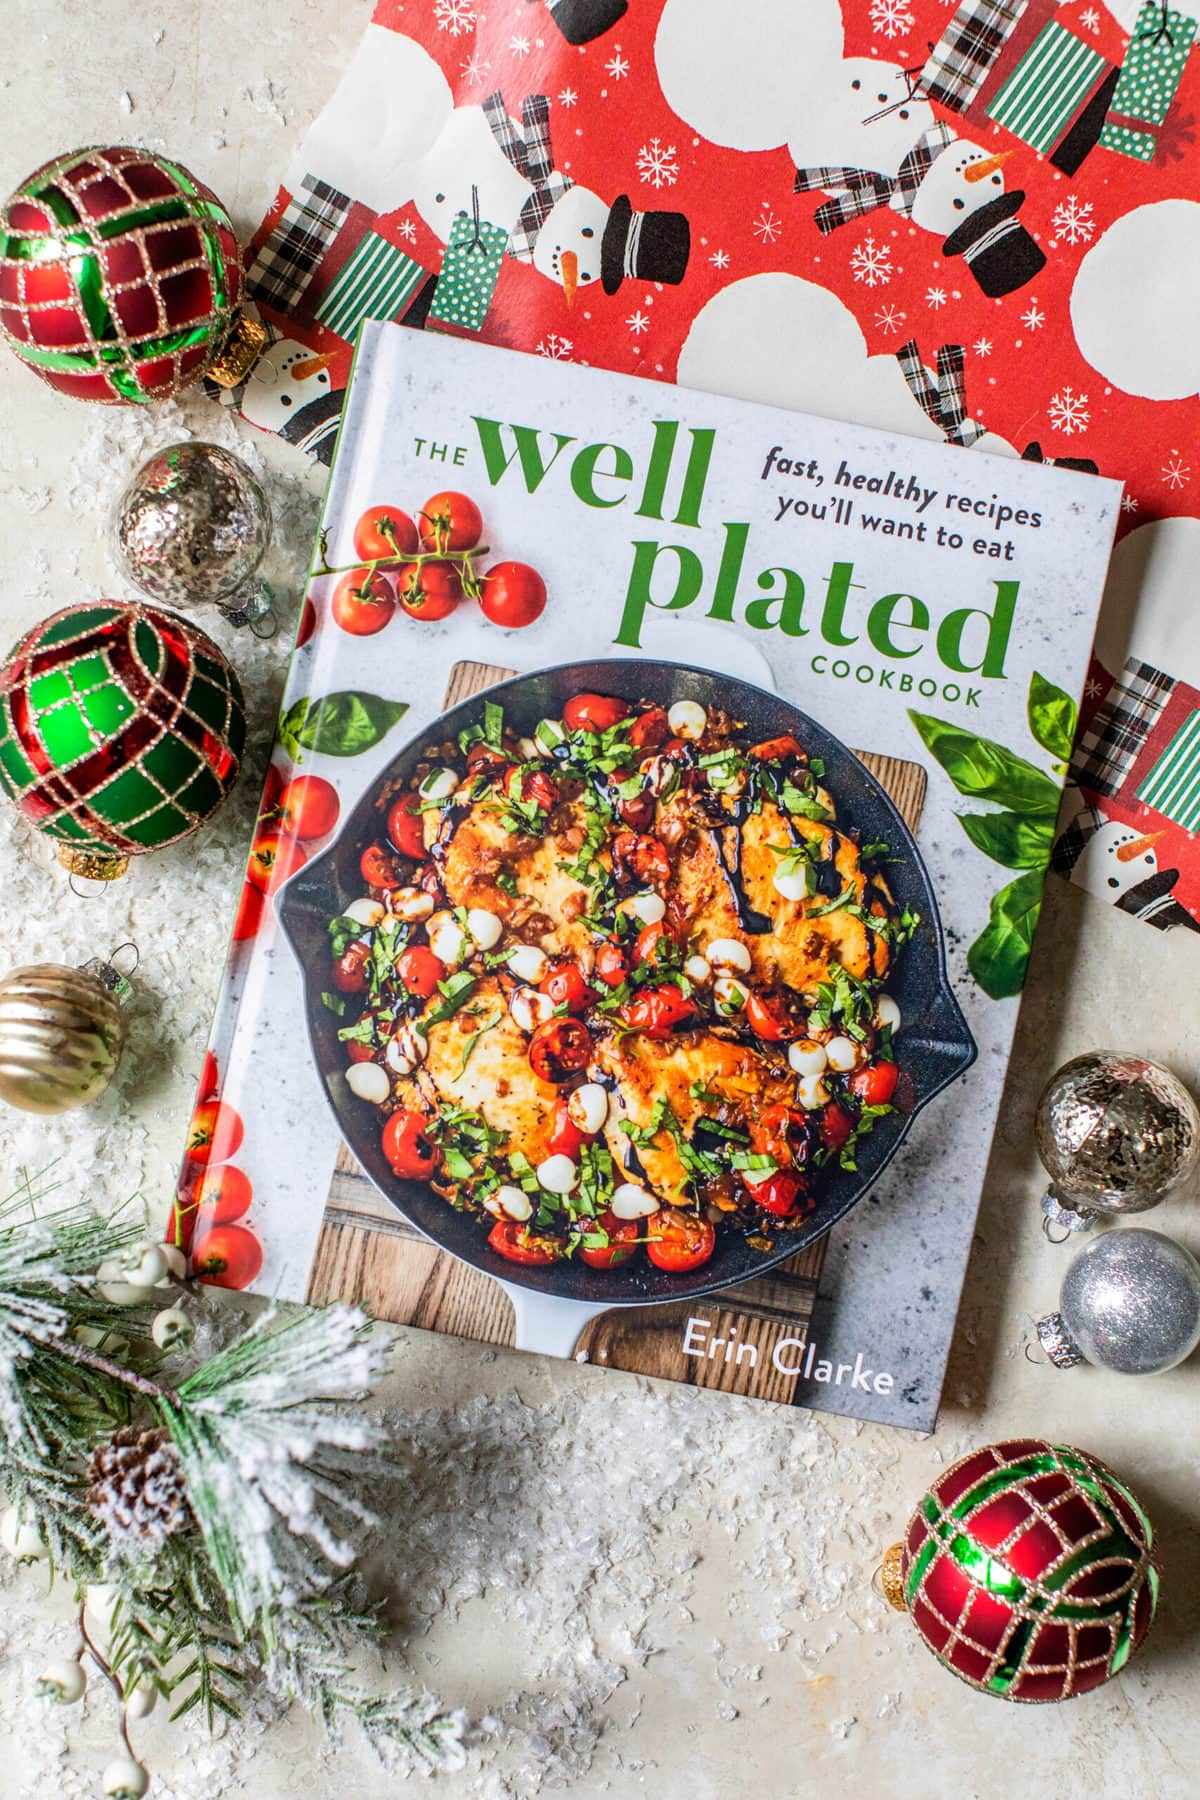 The Well Plated Cookbook with Wrapping Paper